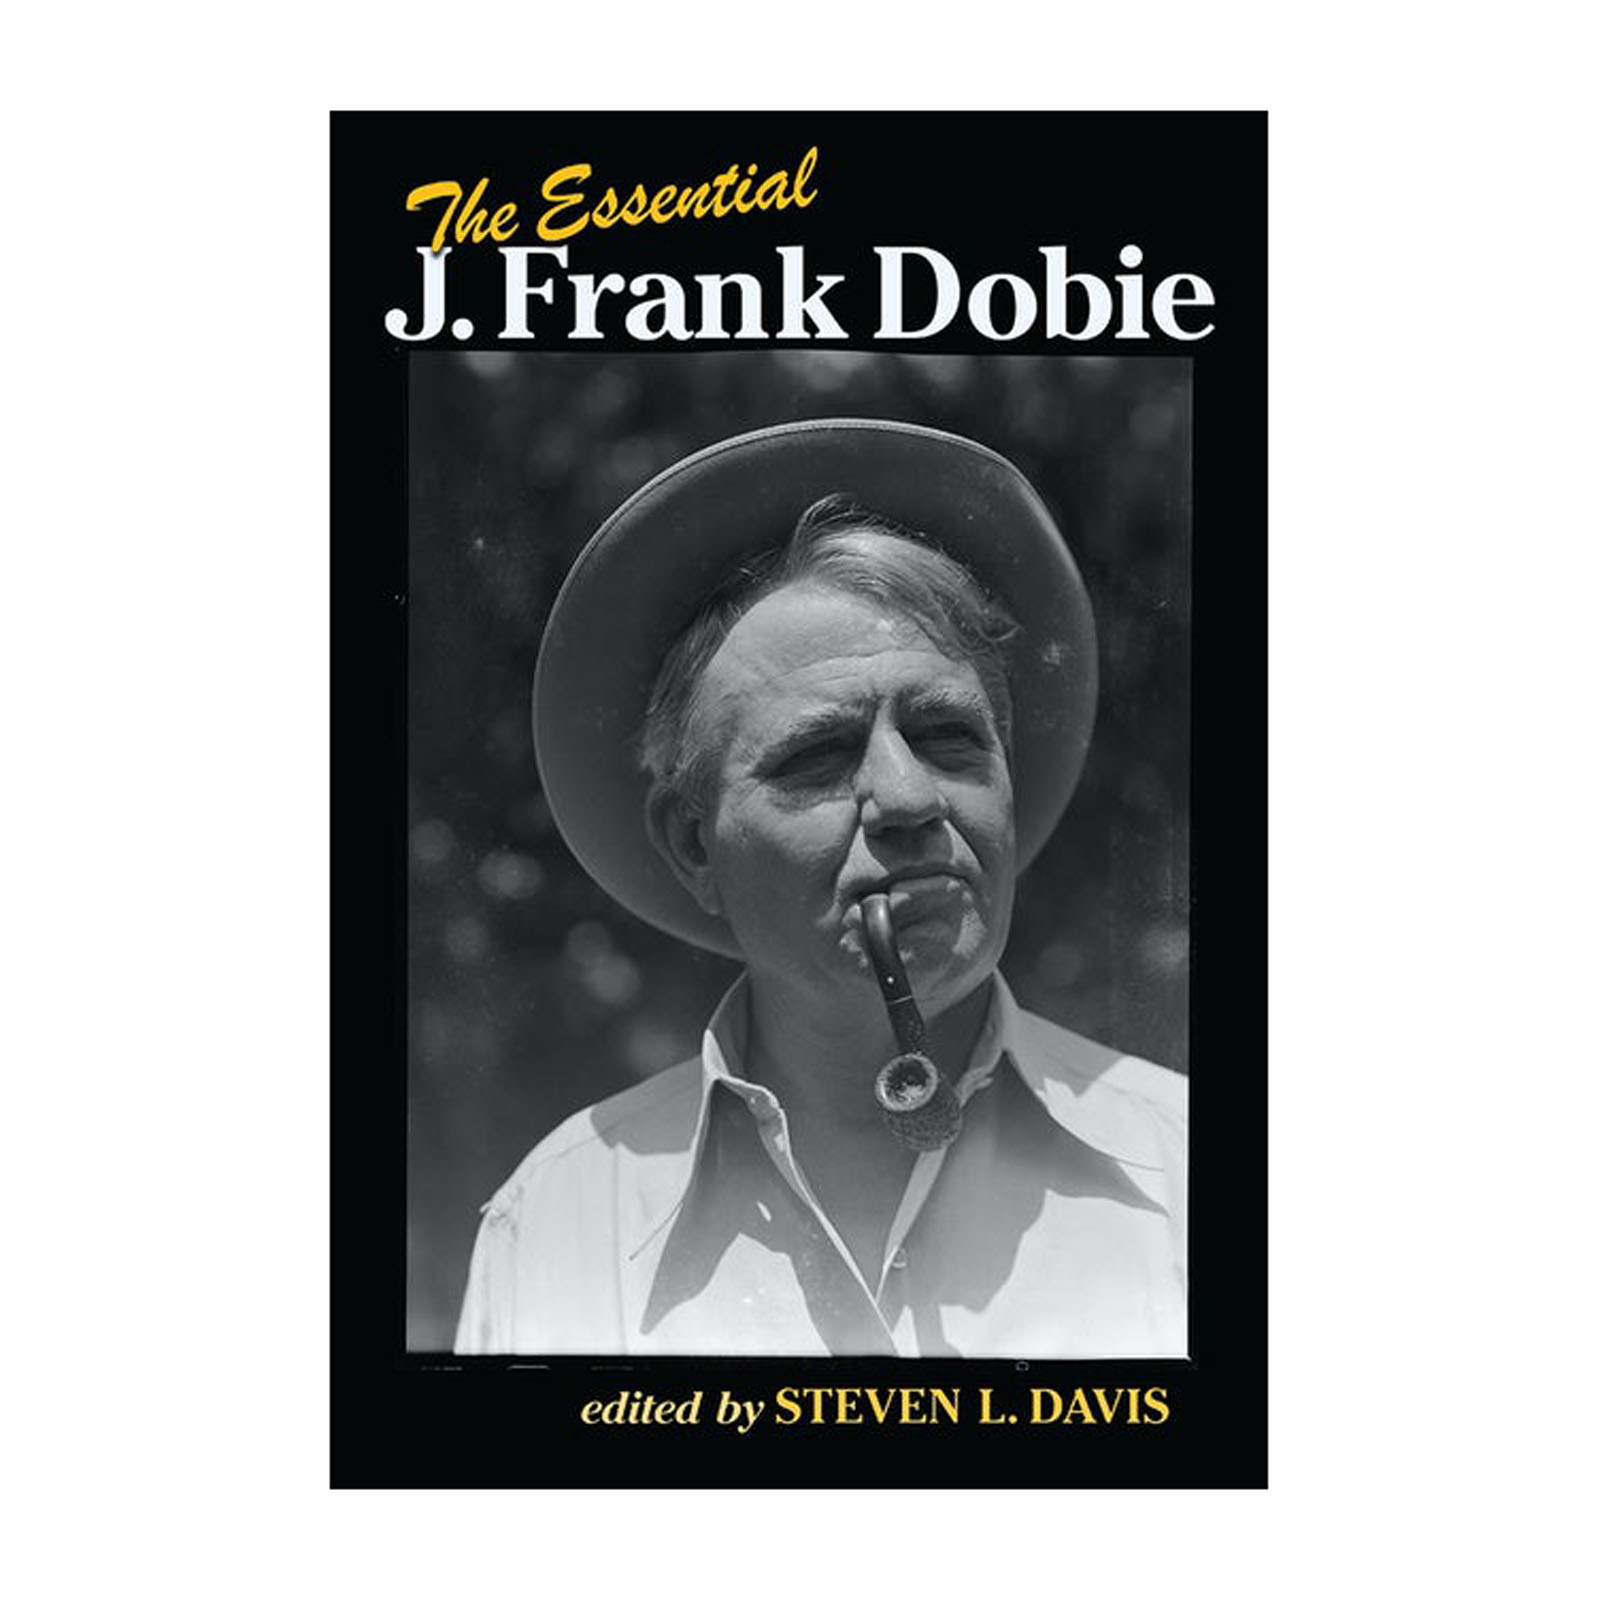 The Essential J. Frank Dobie